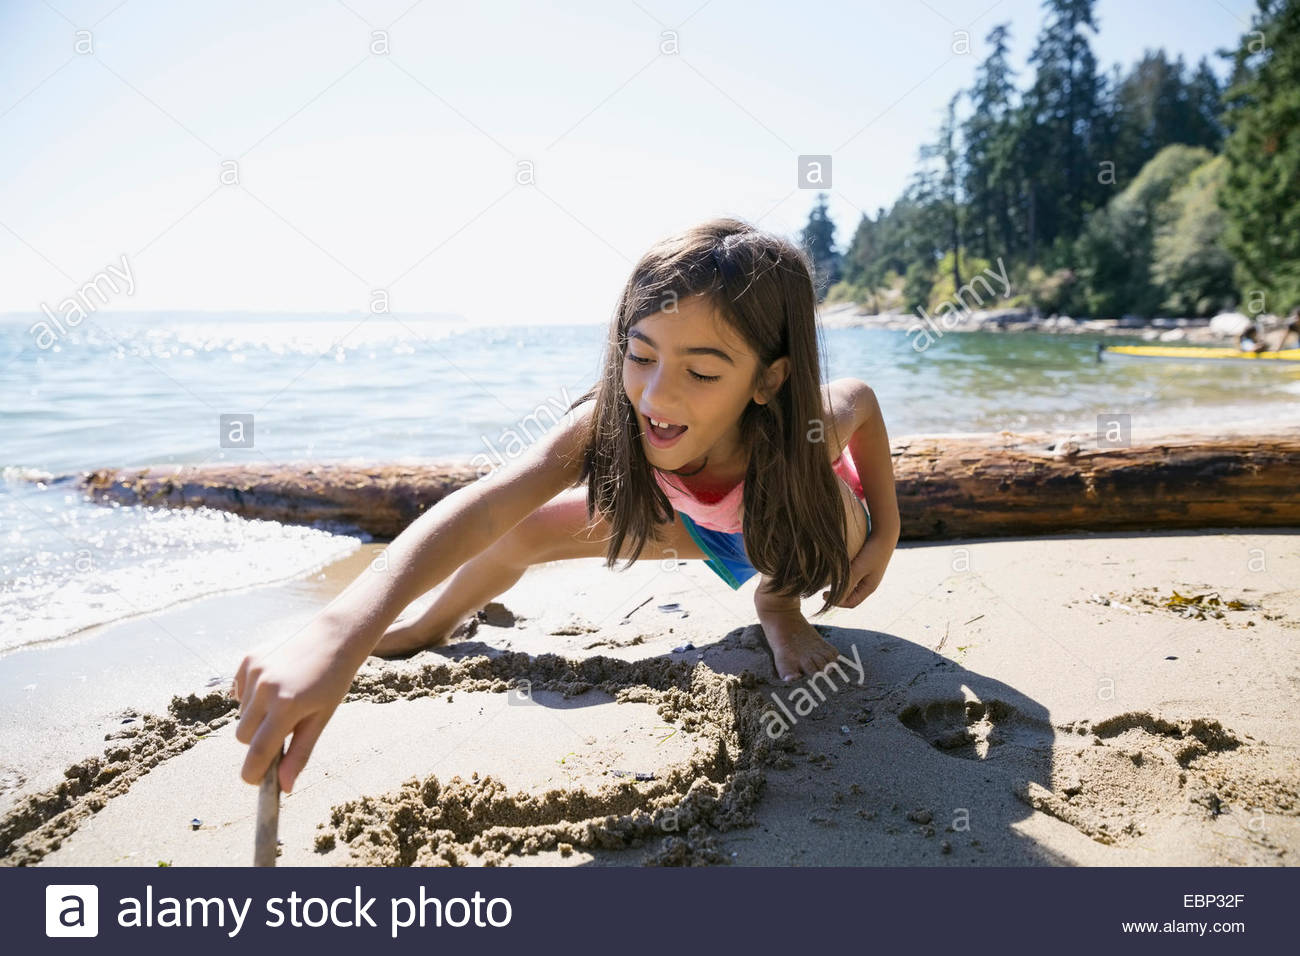 Girl drawing heart-shape in sand on beach - Stock Image